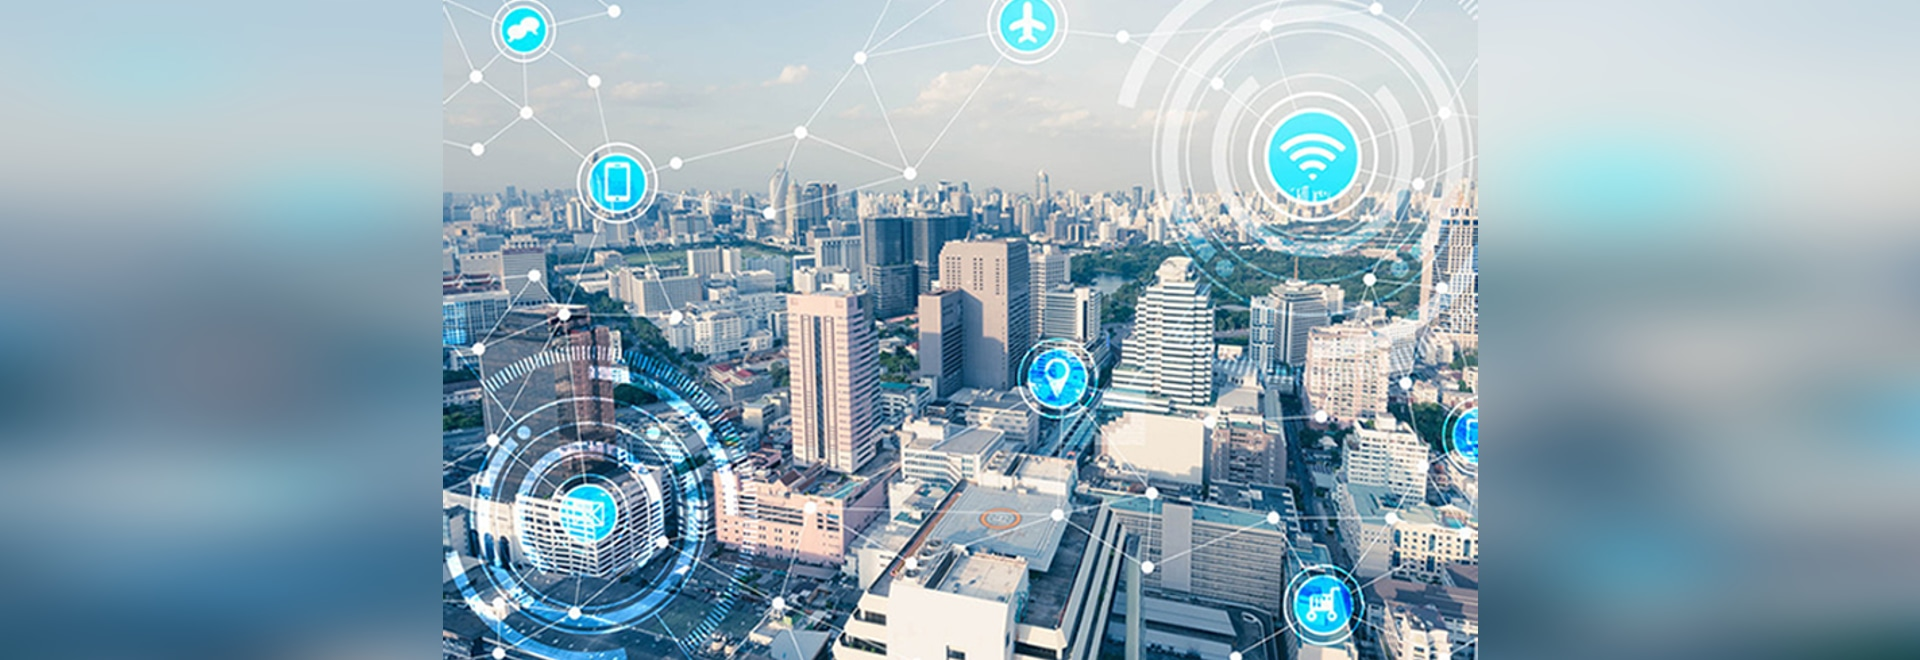 Micro Sensor collaborates with Alibaba Cloud for Smart City Construction